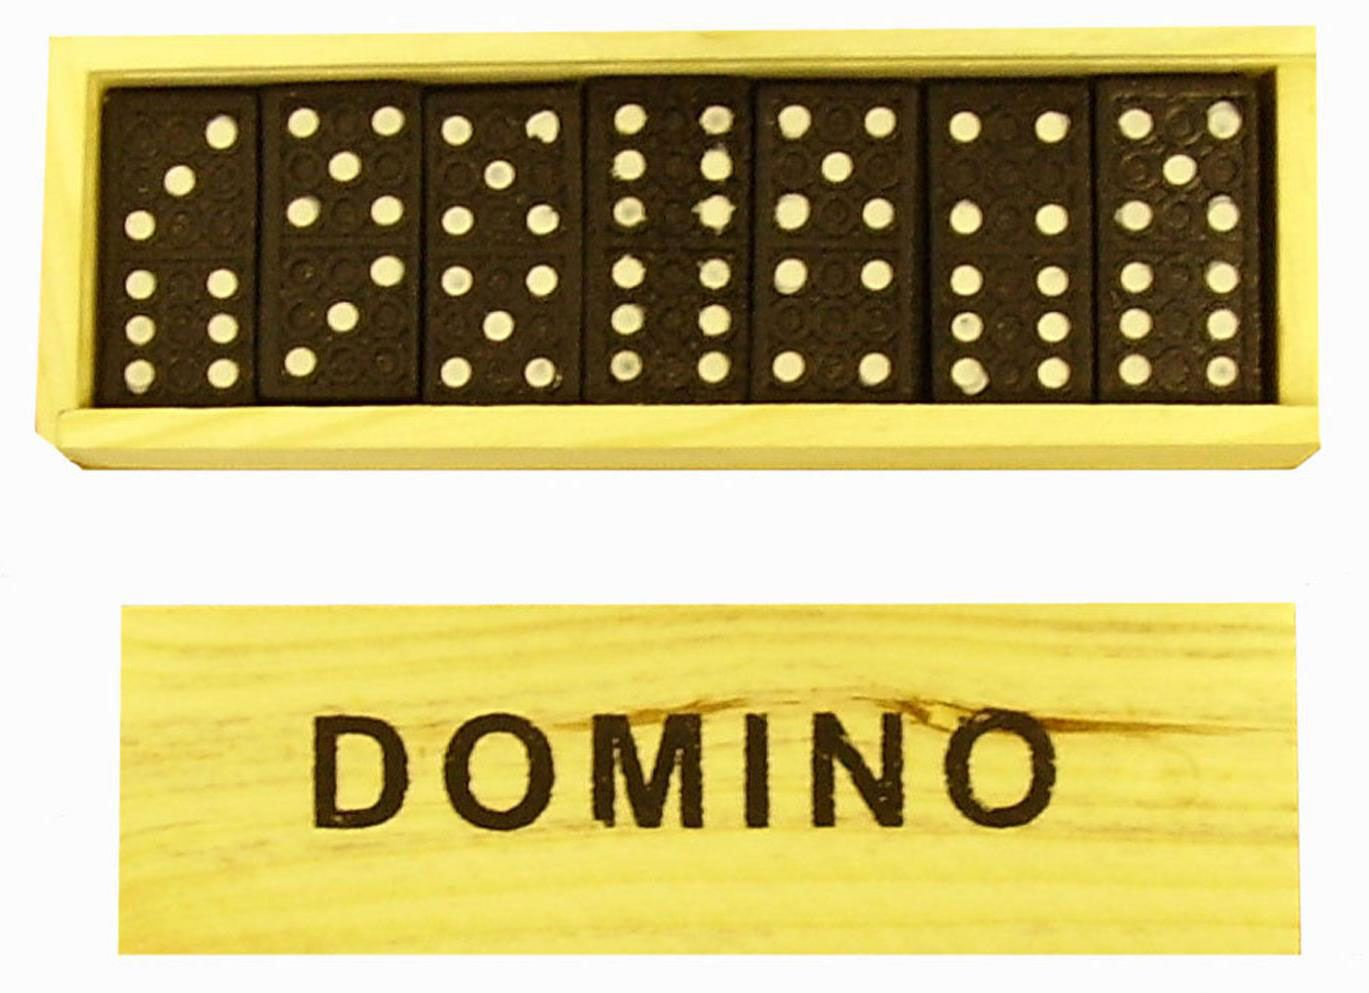 36 Children's Dominoes Games - L38 077